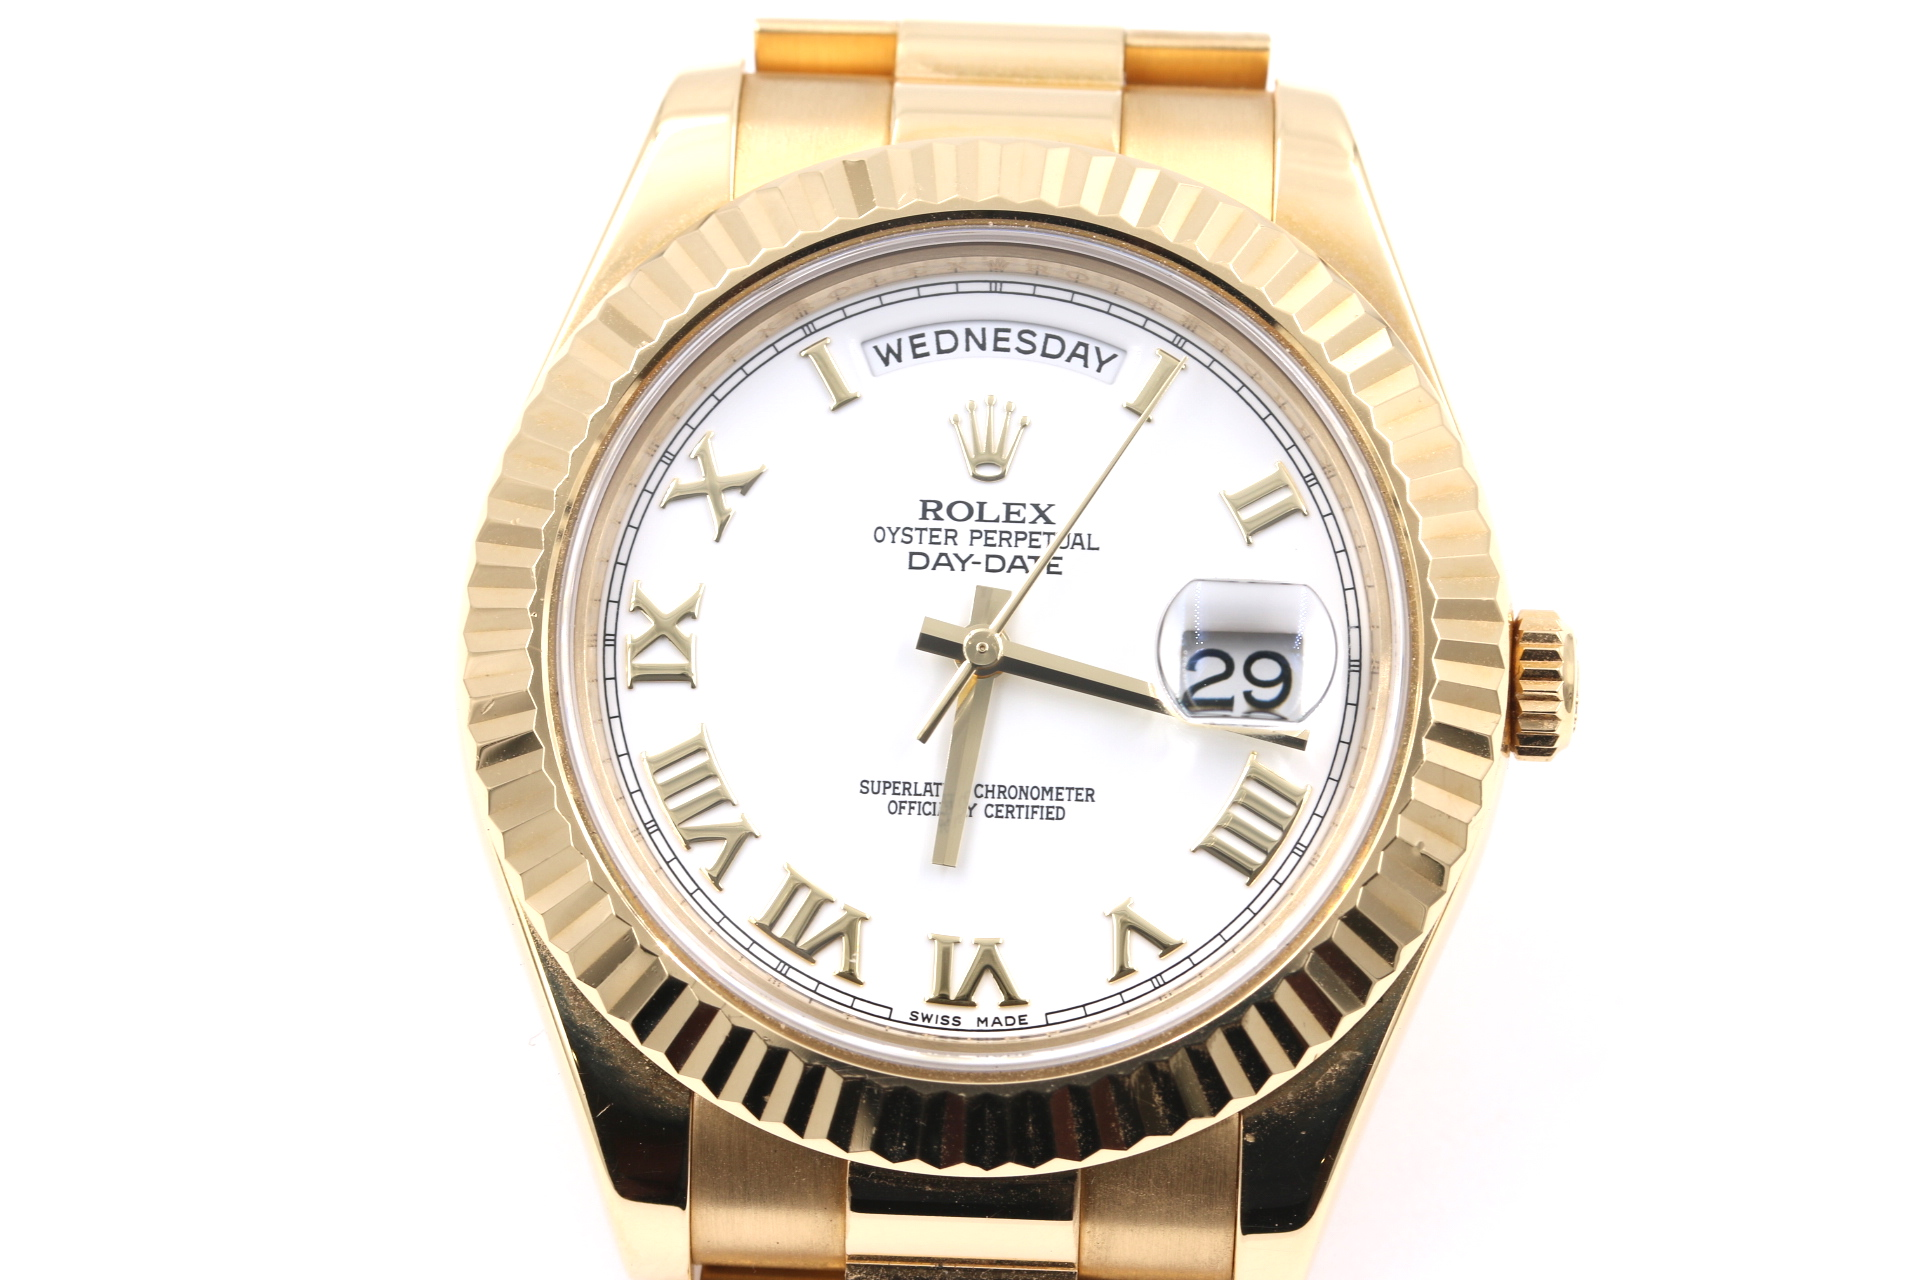 rolex watch broker orange county jeweler front face